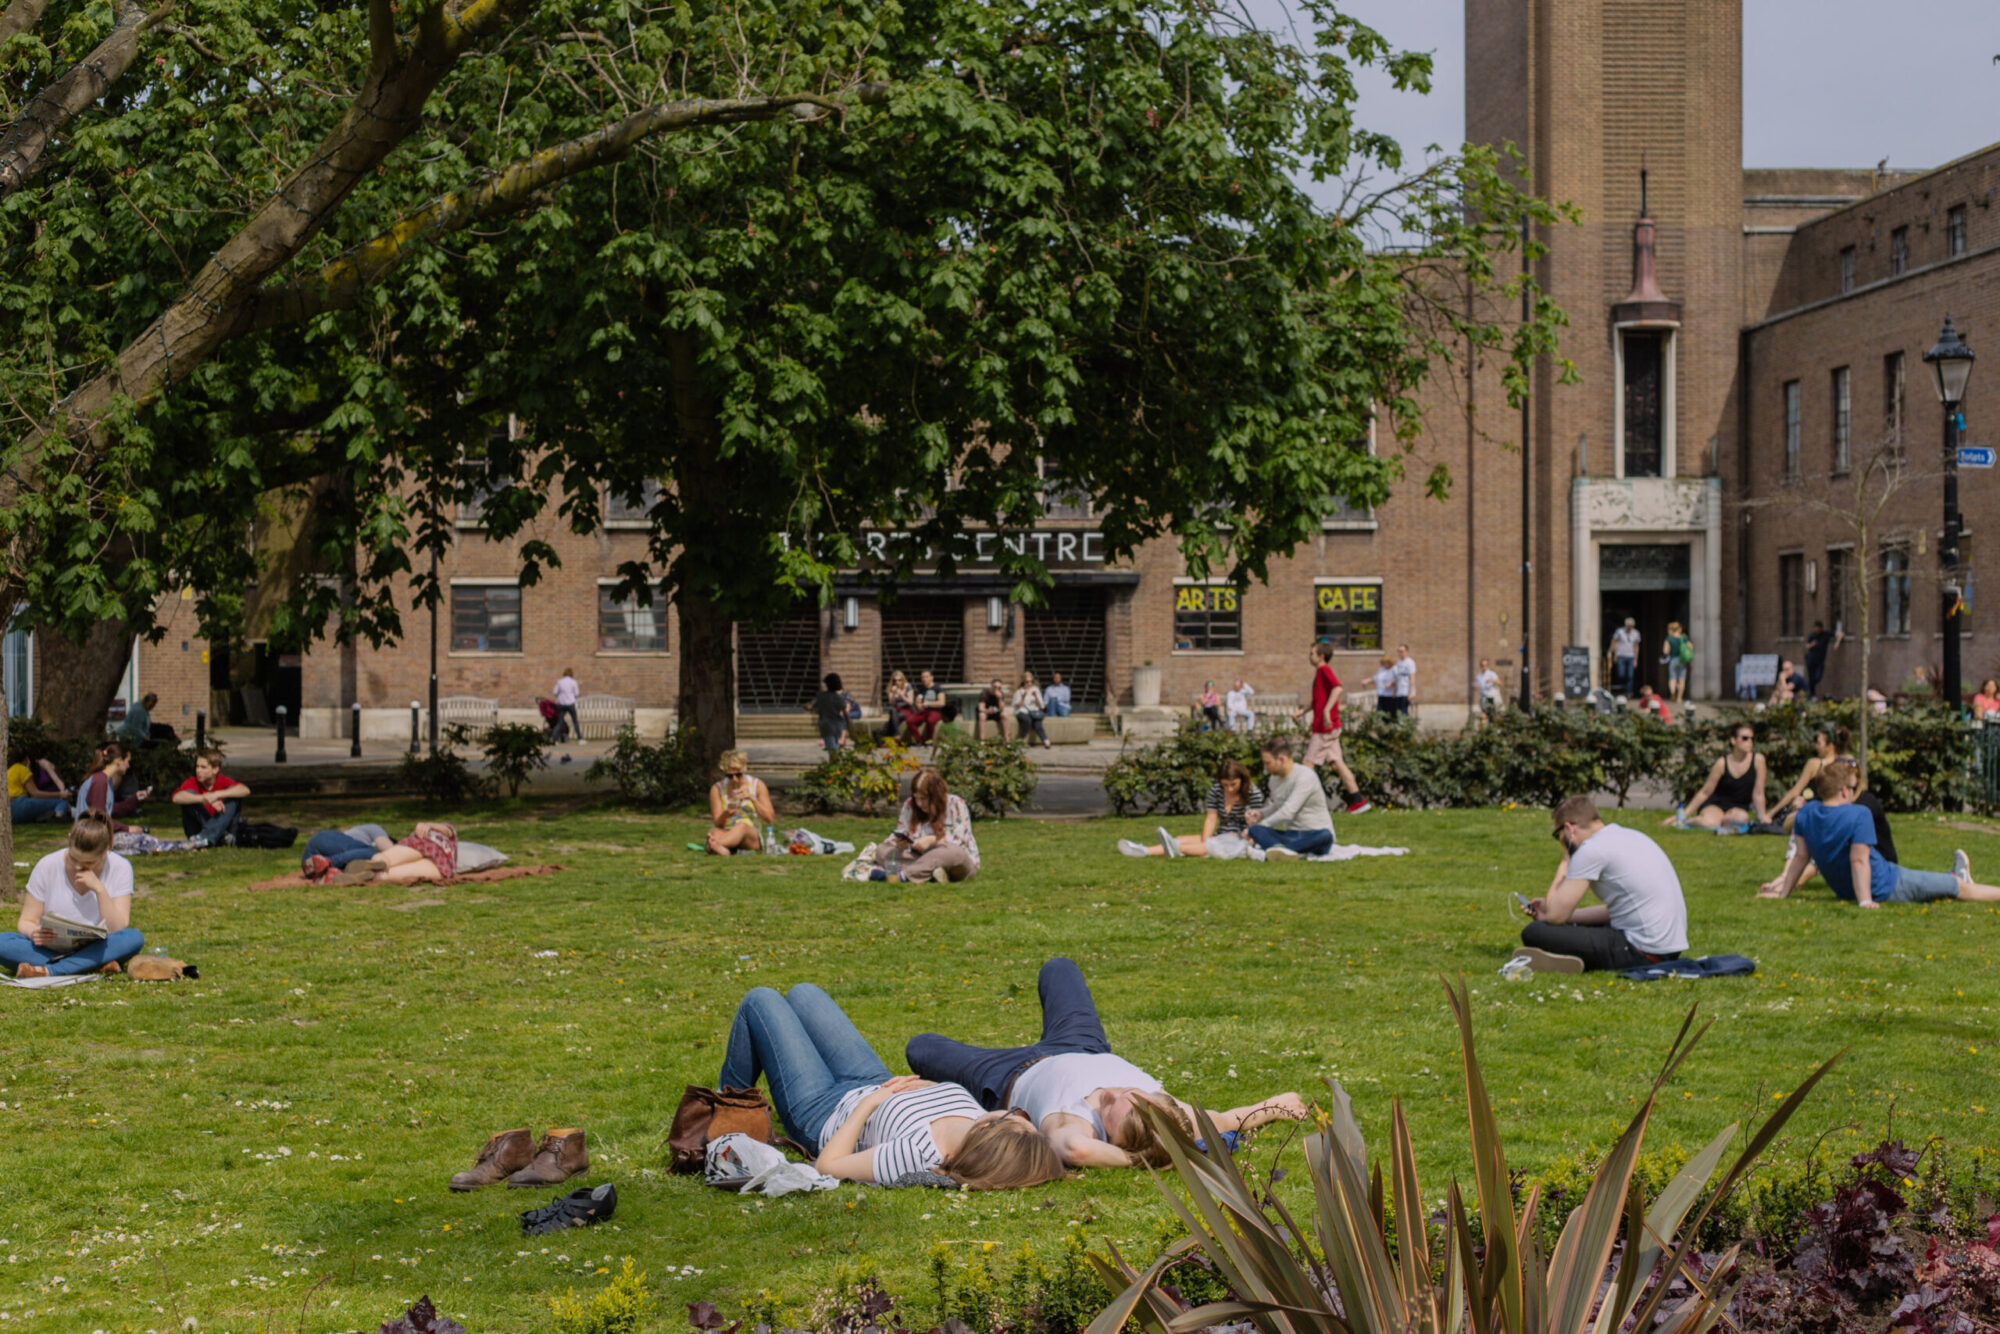 People sitting and lying on the grass of a local park in Crouch End.